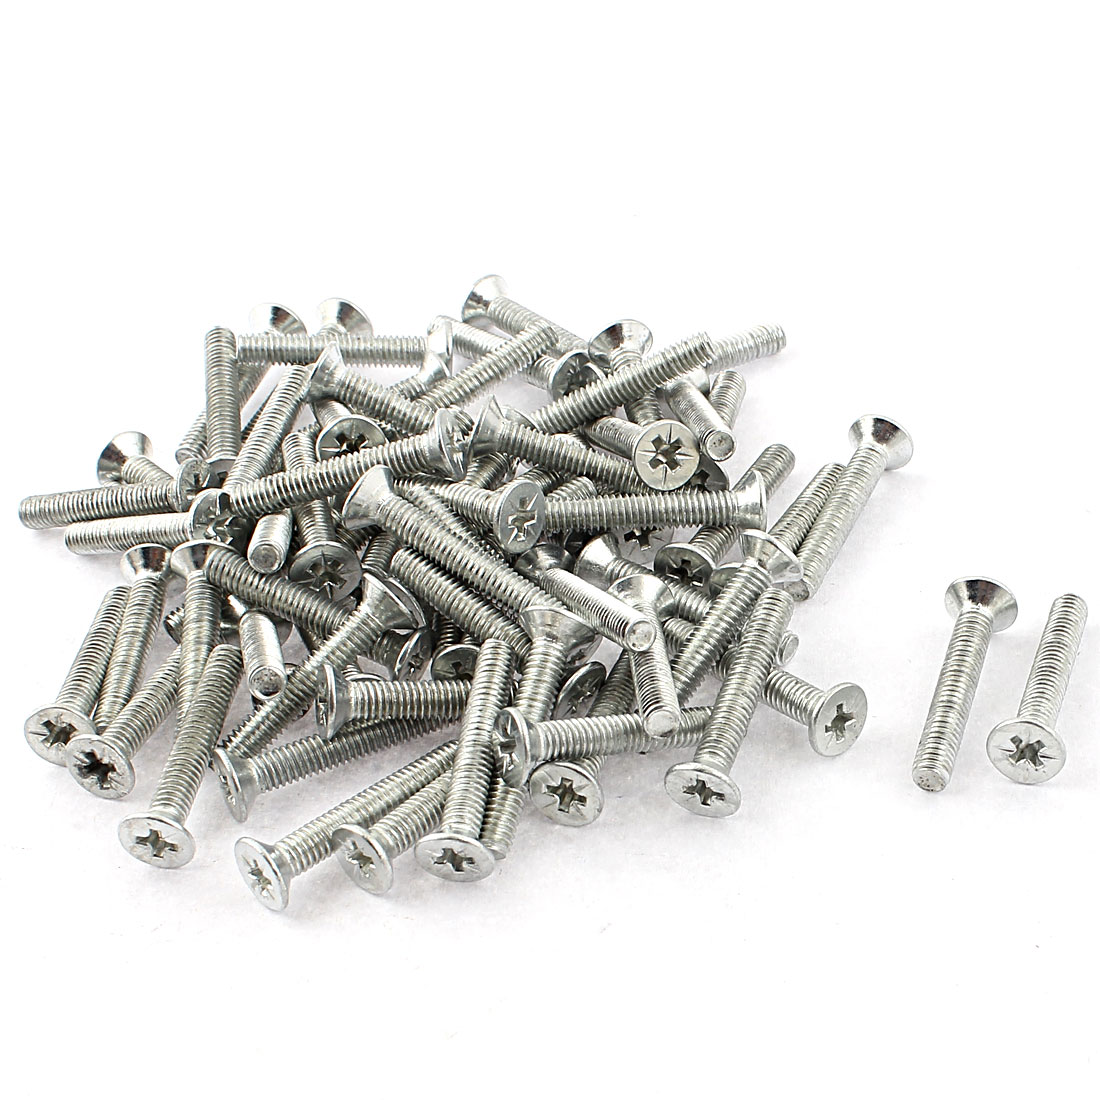 25mm x 4mm Countersunk Flat Head Cross Phillips Screw Bolt Silver Tone 70pcs